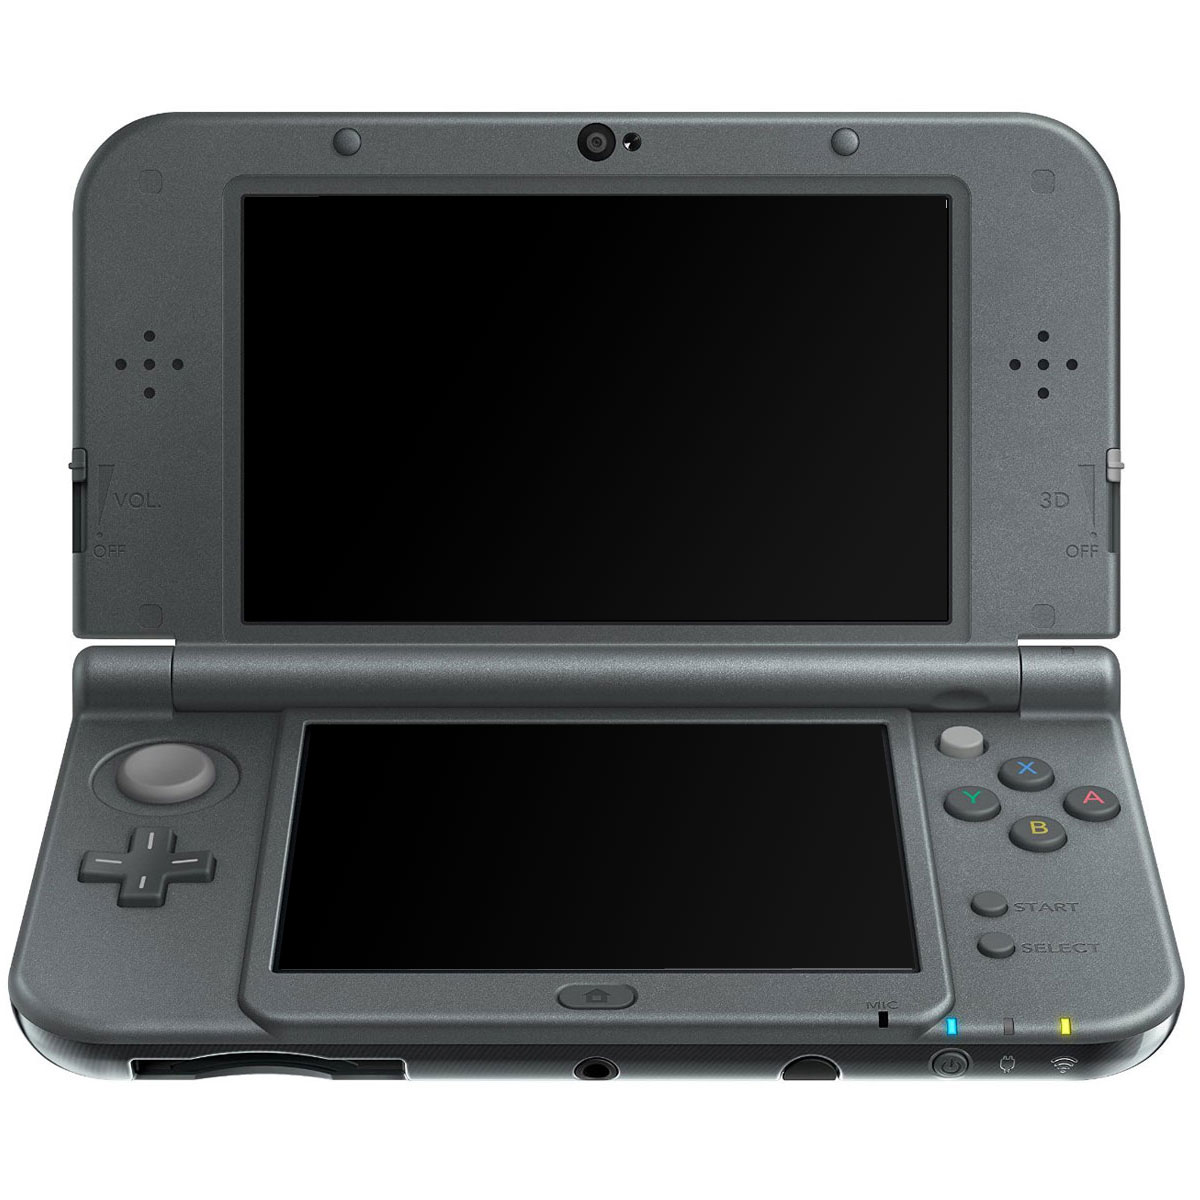 nintendo new 3ds xl noire console nintendo 3ds nintendo sur. Black Bedroom Furniture Sets. Home Design Ideas